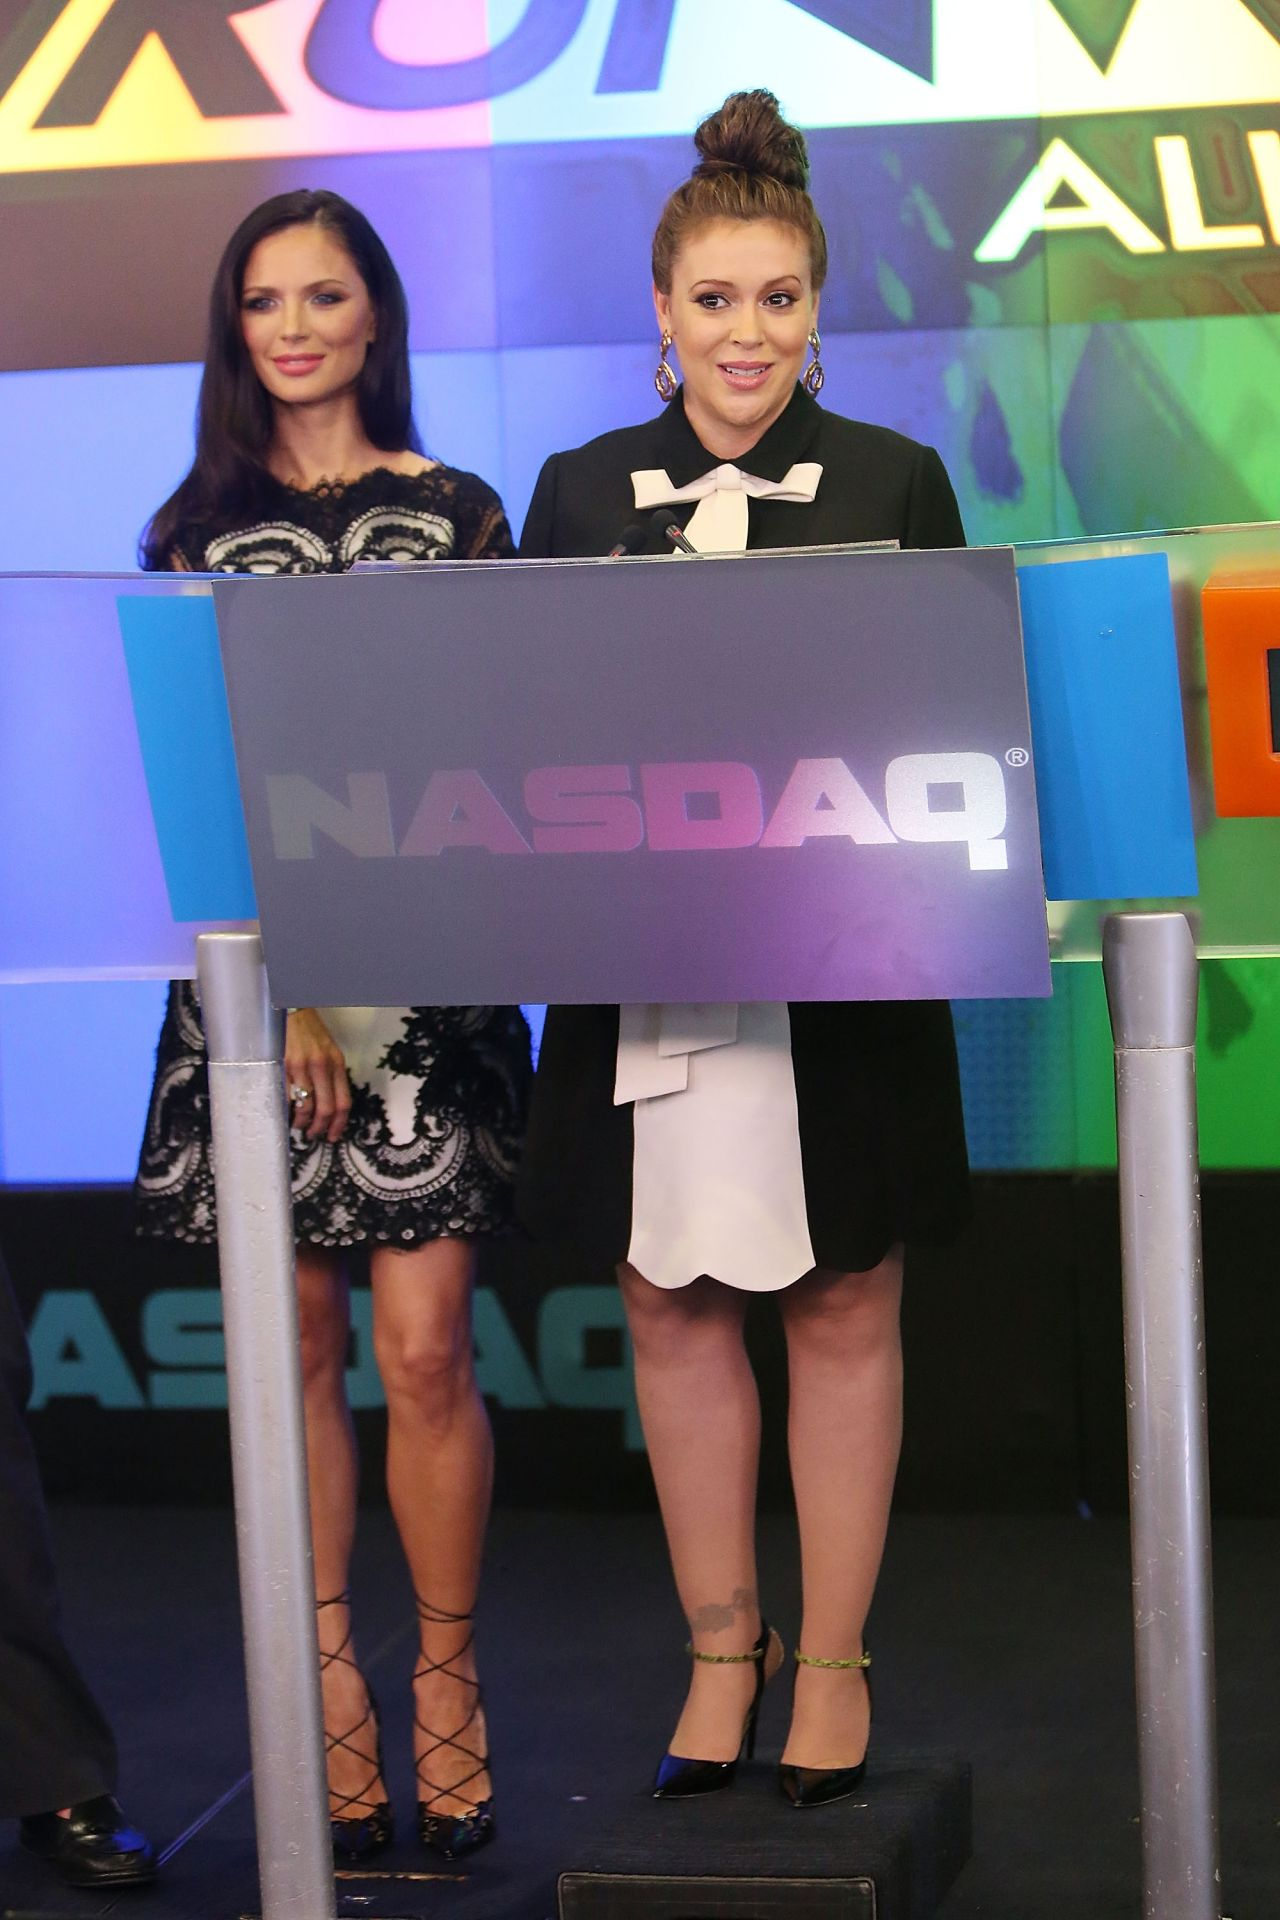 Alyssa Milano Rings the NASDAQ Closing Bell - July 2014